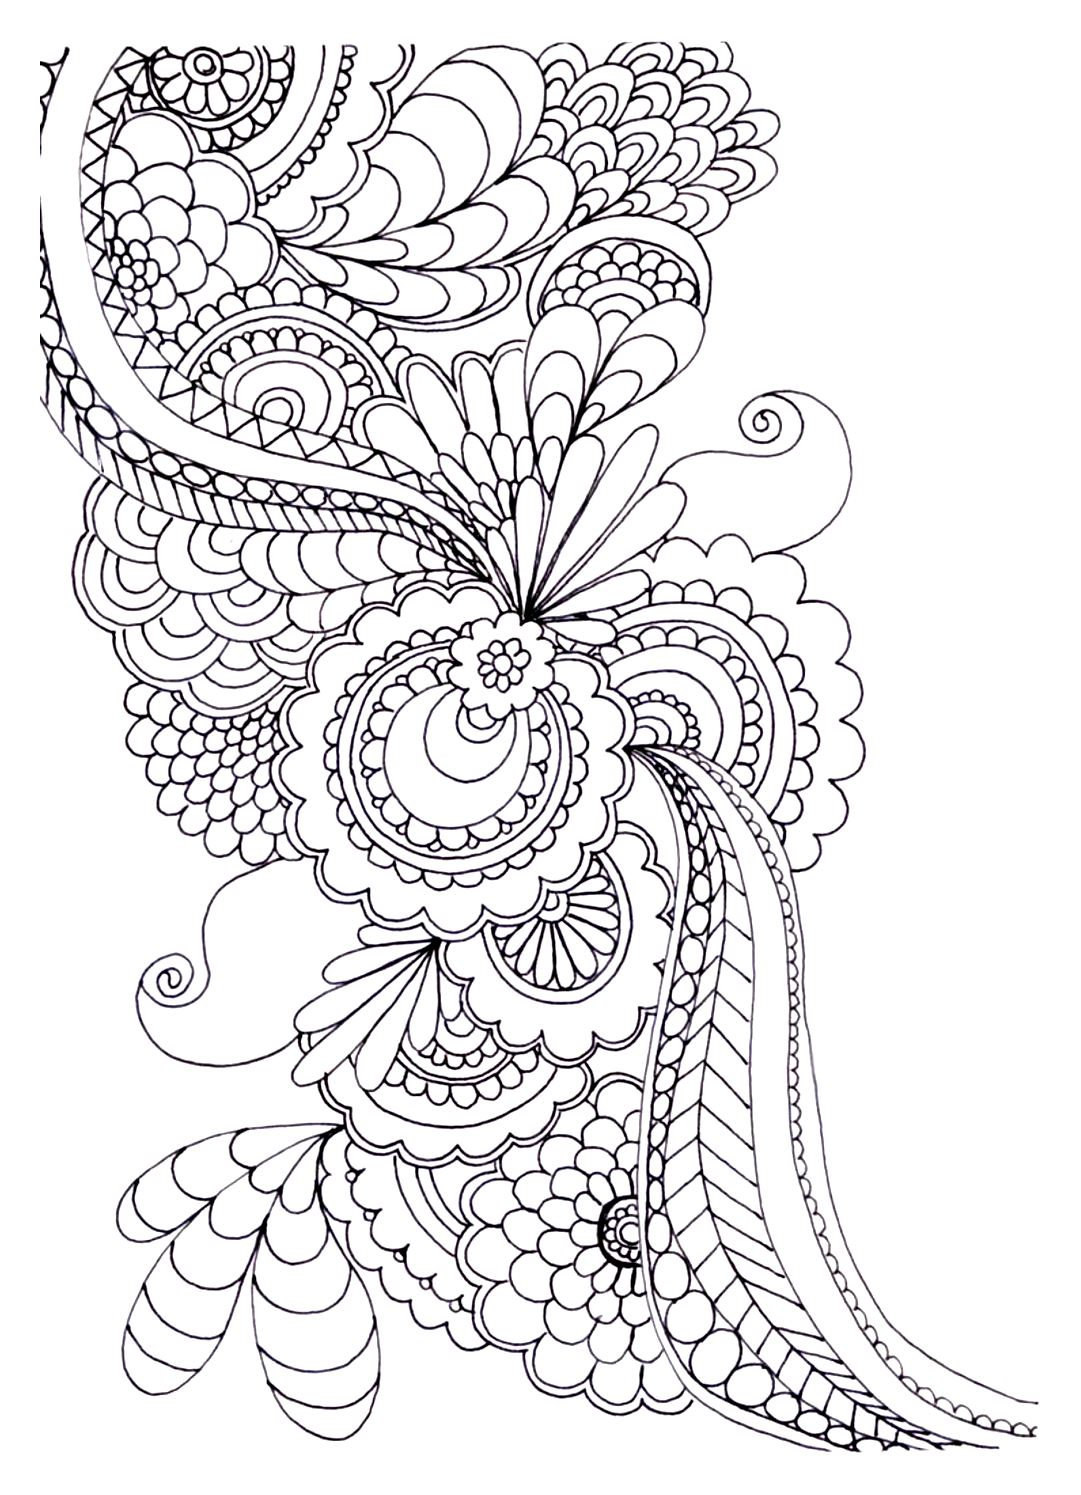 20 Free Adult Colouring Pages - The Organised Housewife-3781